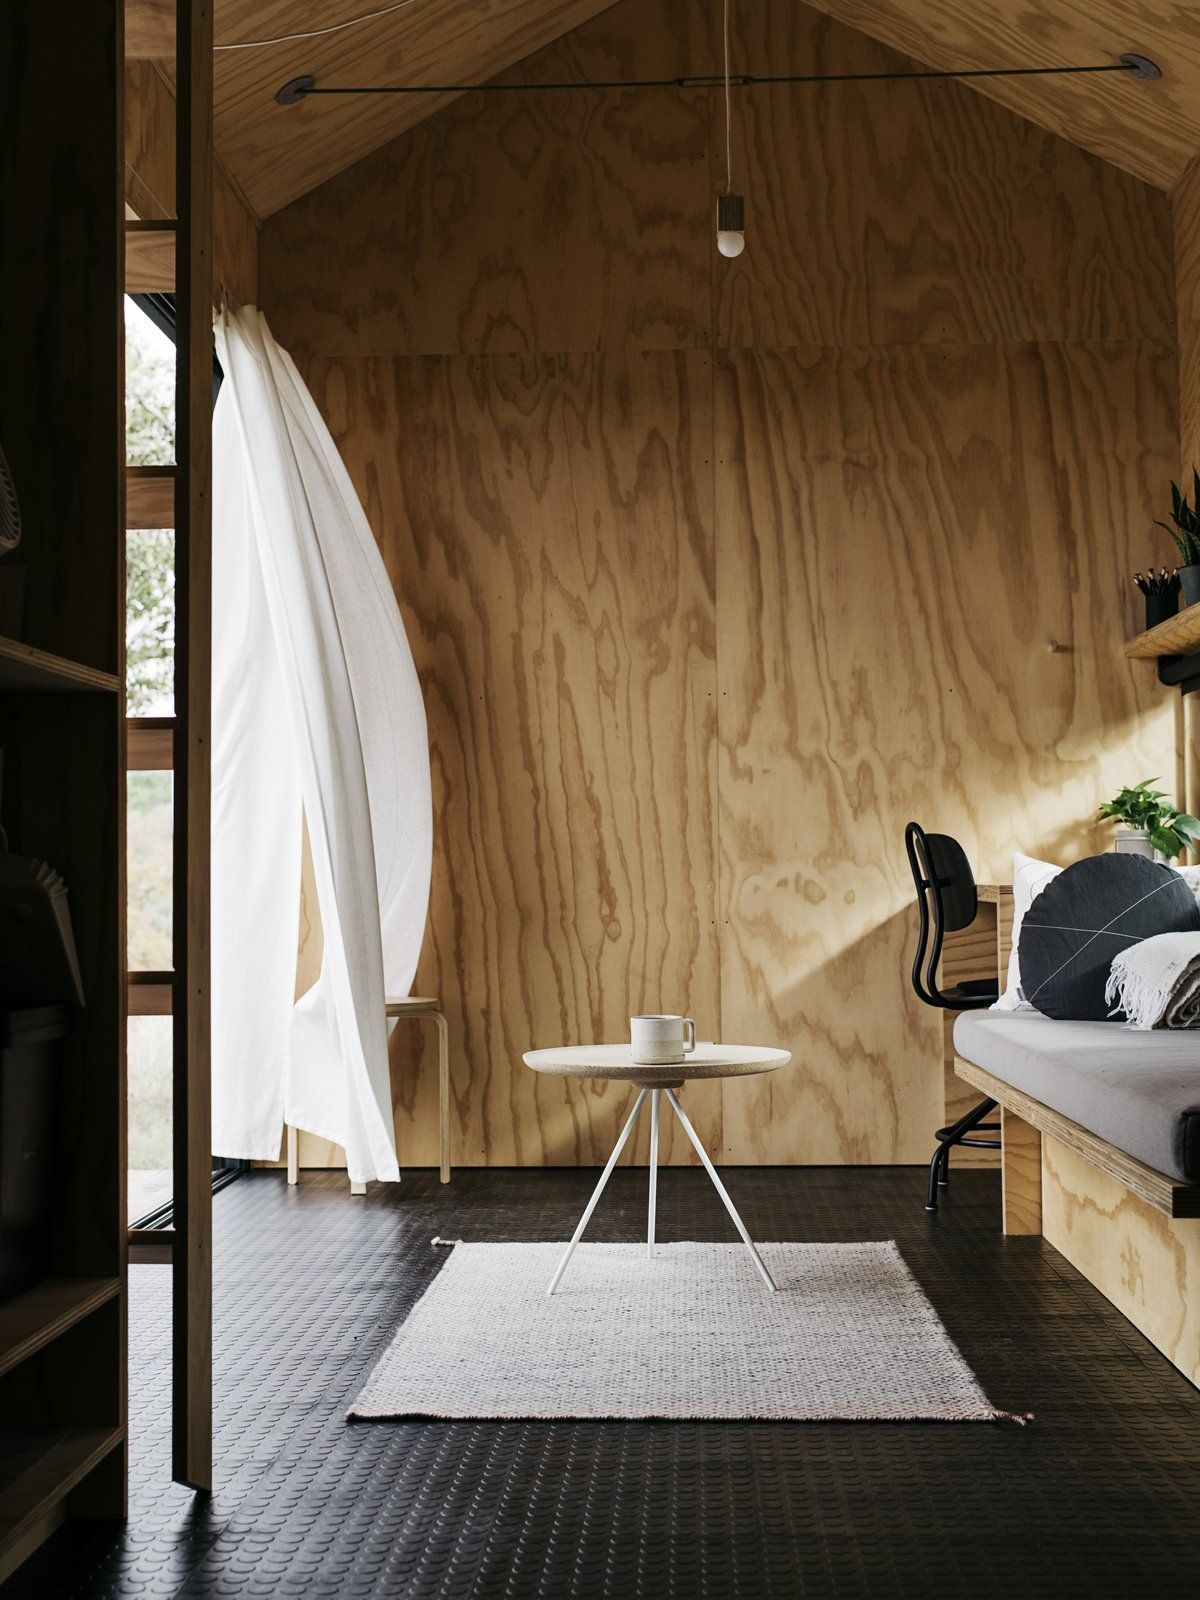 Inside, the cabin features plywood-covered walls, a matching ceiling and rubber floor tiles